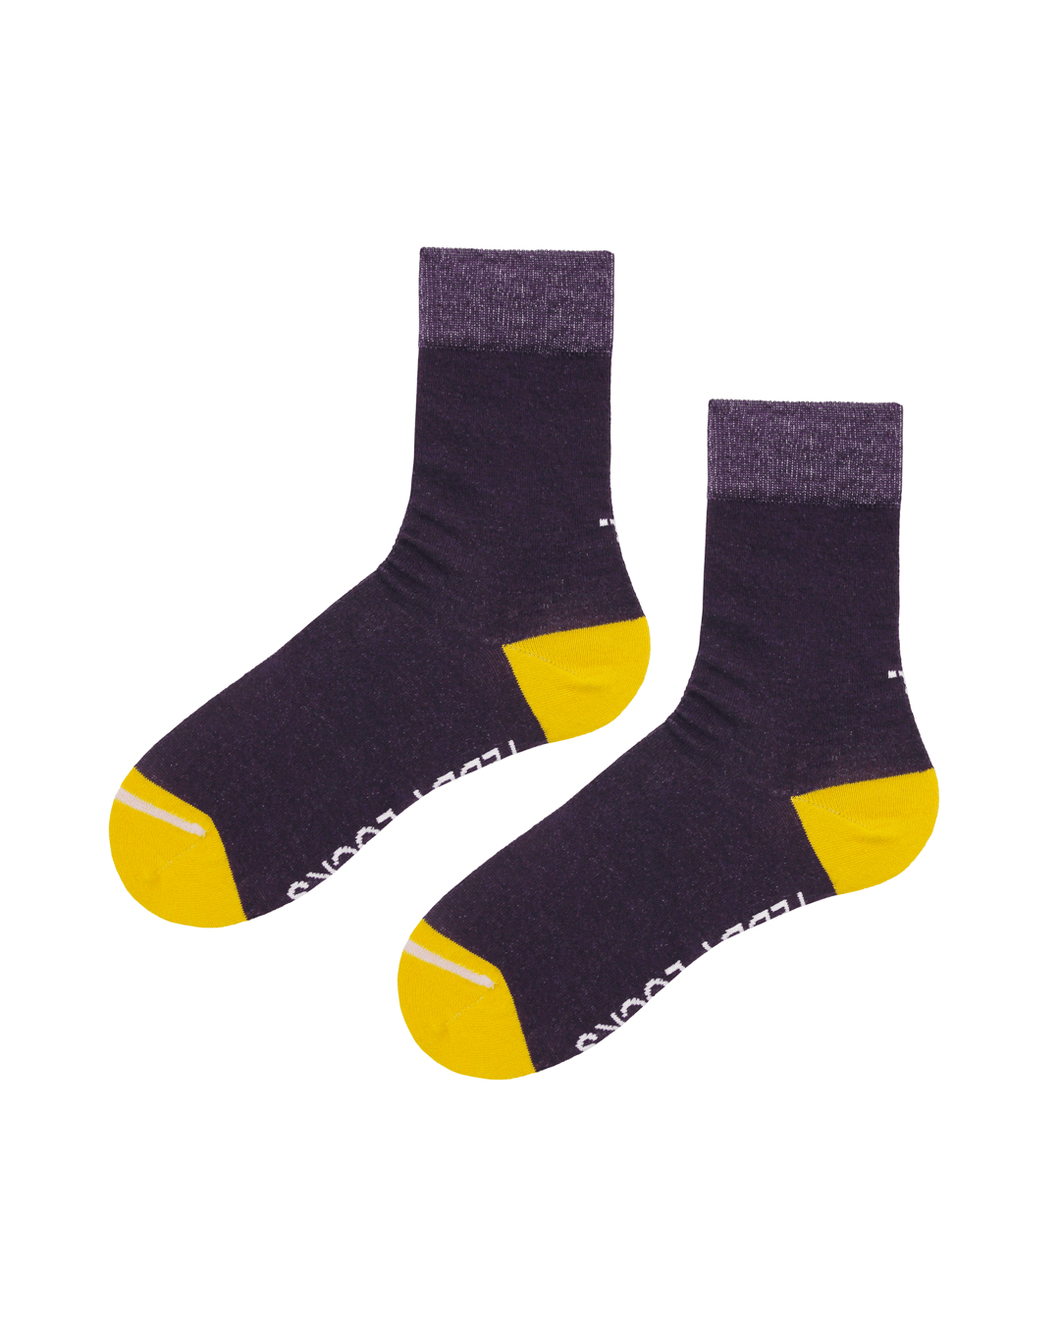 Dark purple socks. Ecofriendly socks with yellow toes.